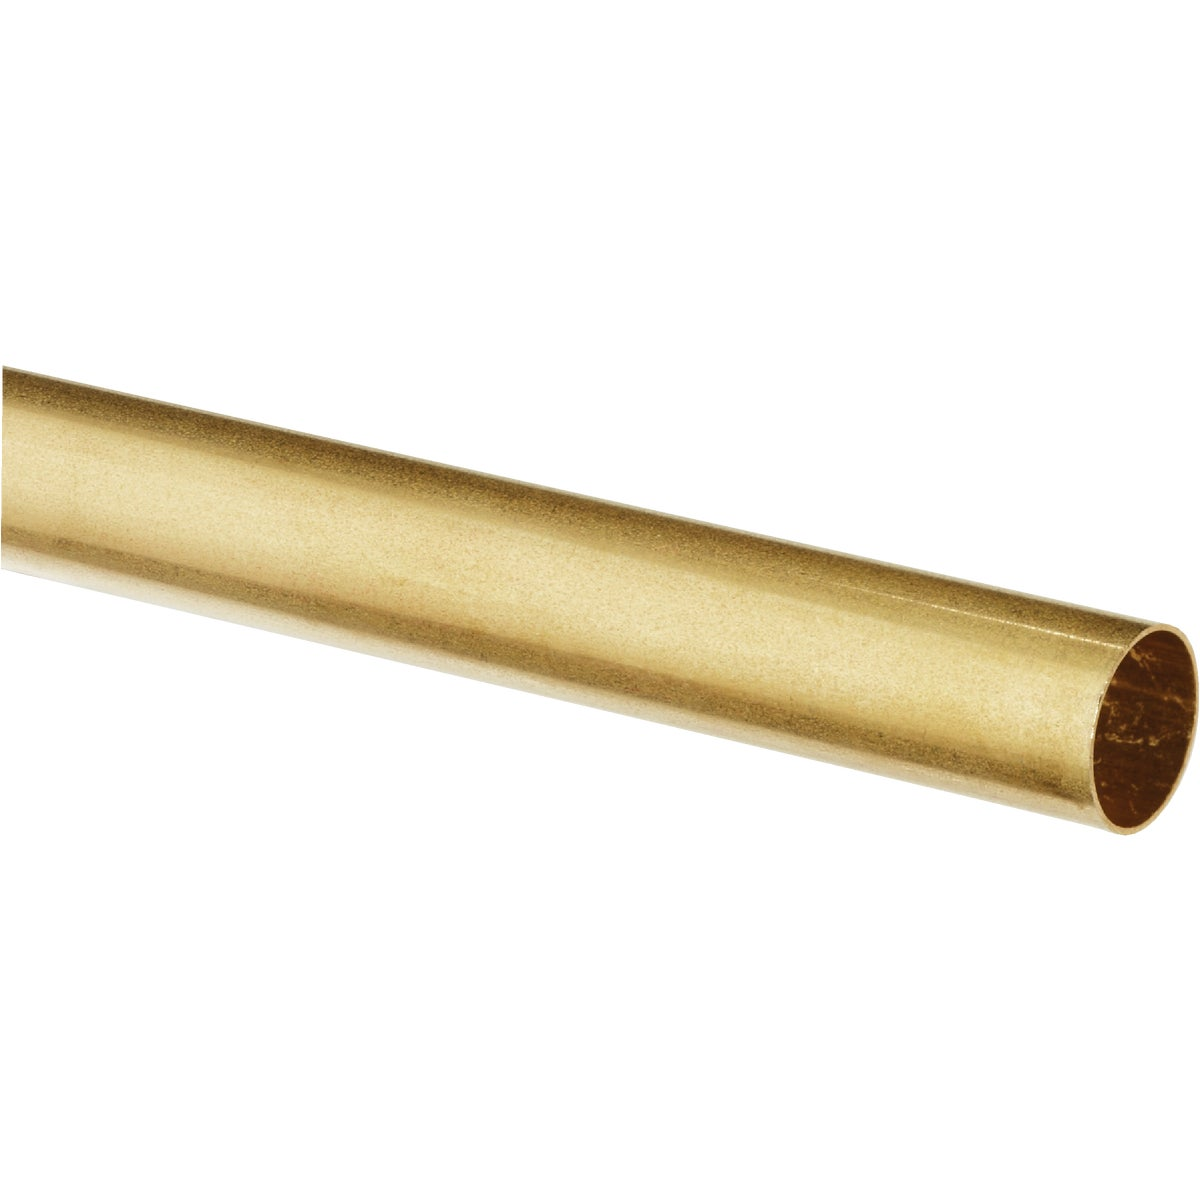 .014X1/8X12 BRS RD TUBE - 8127 by K&s Precision Metals